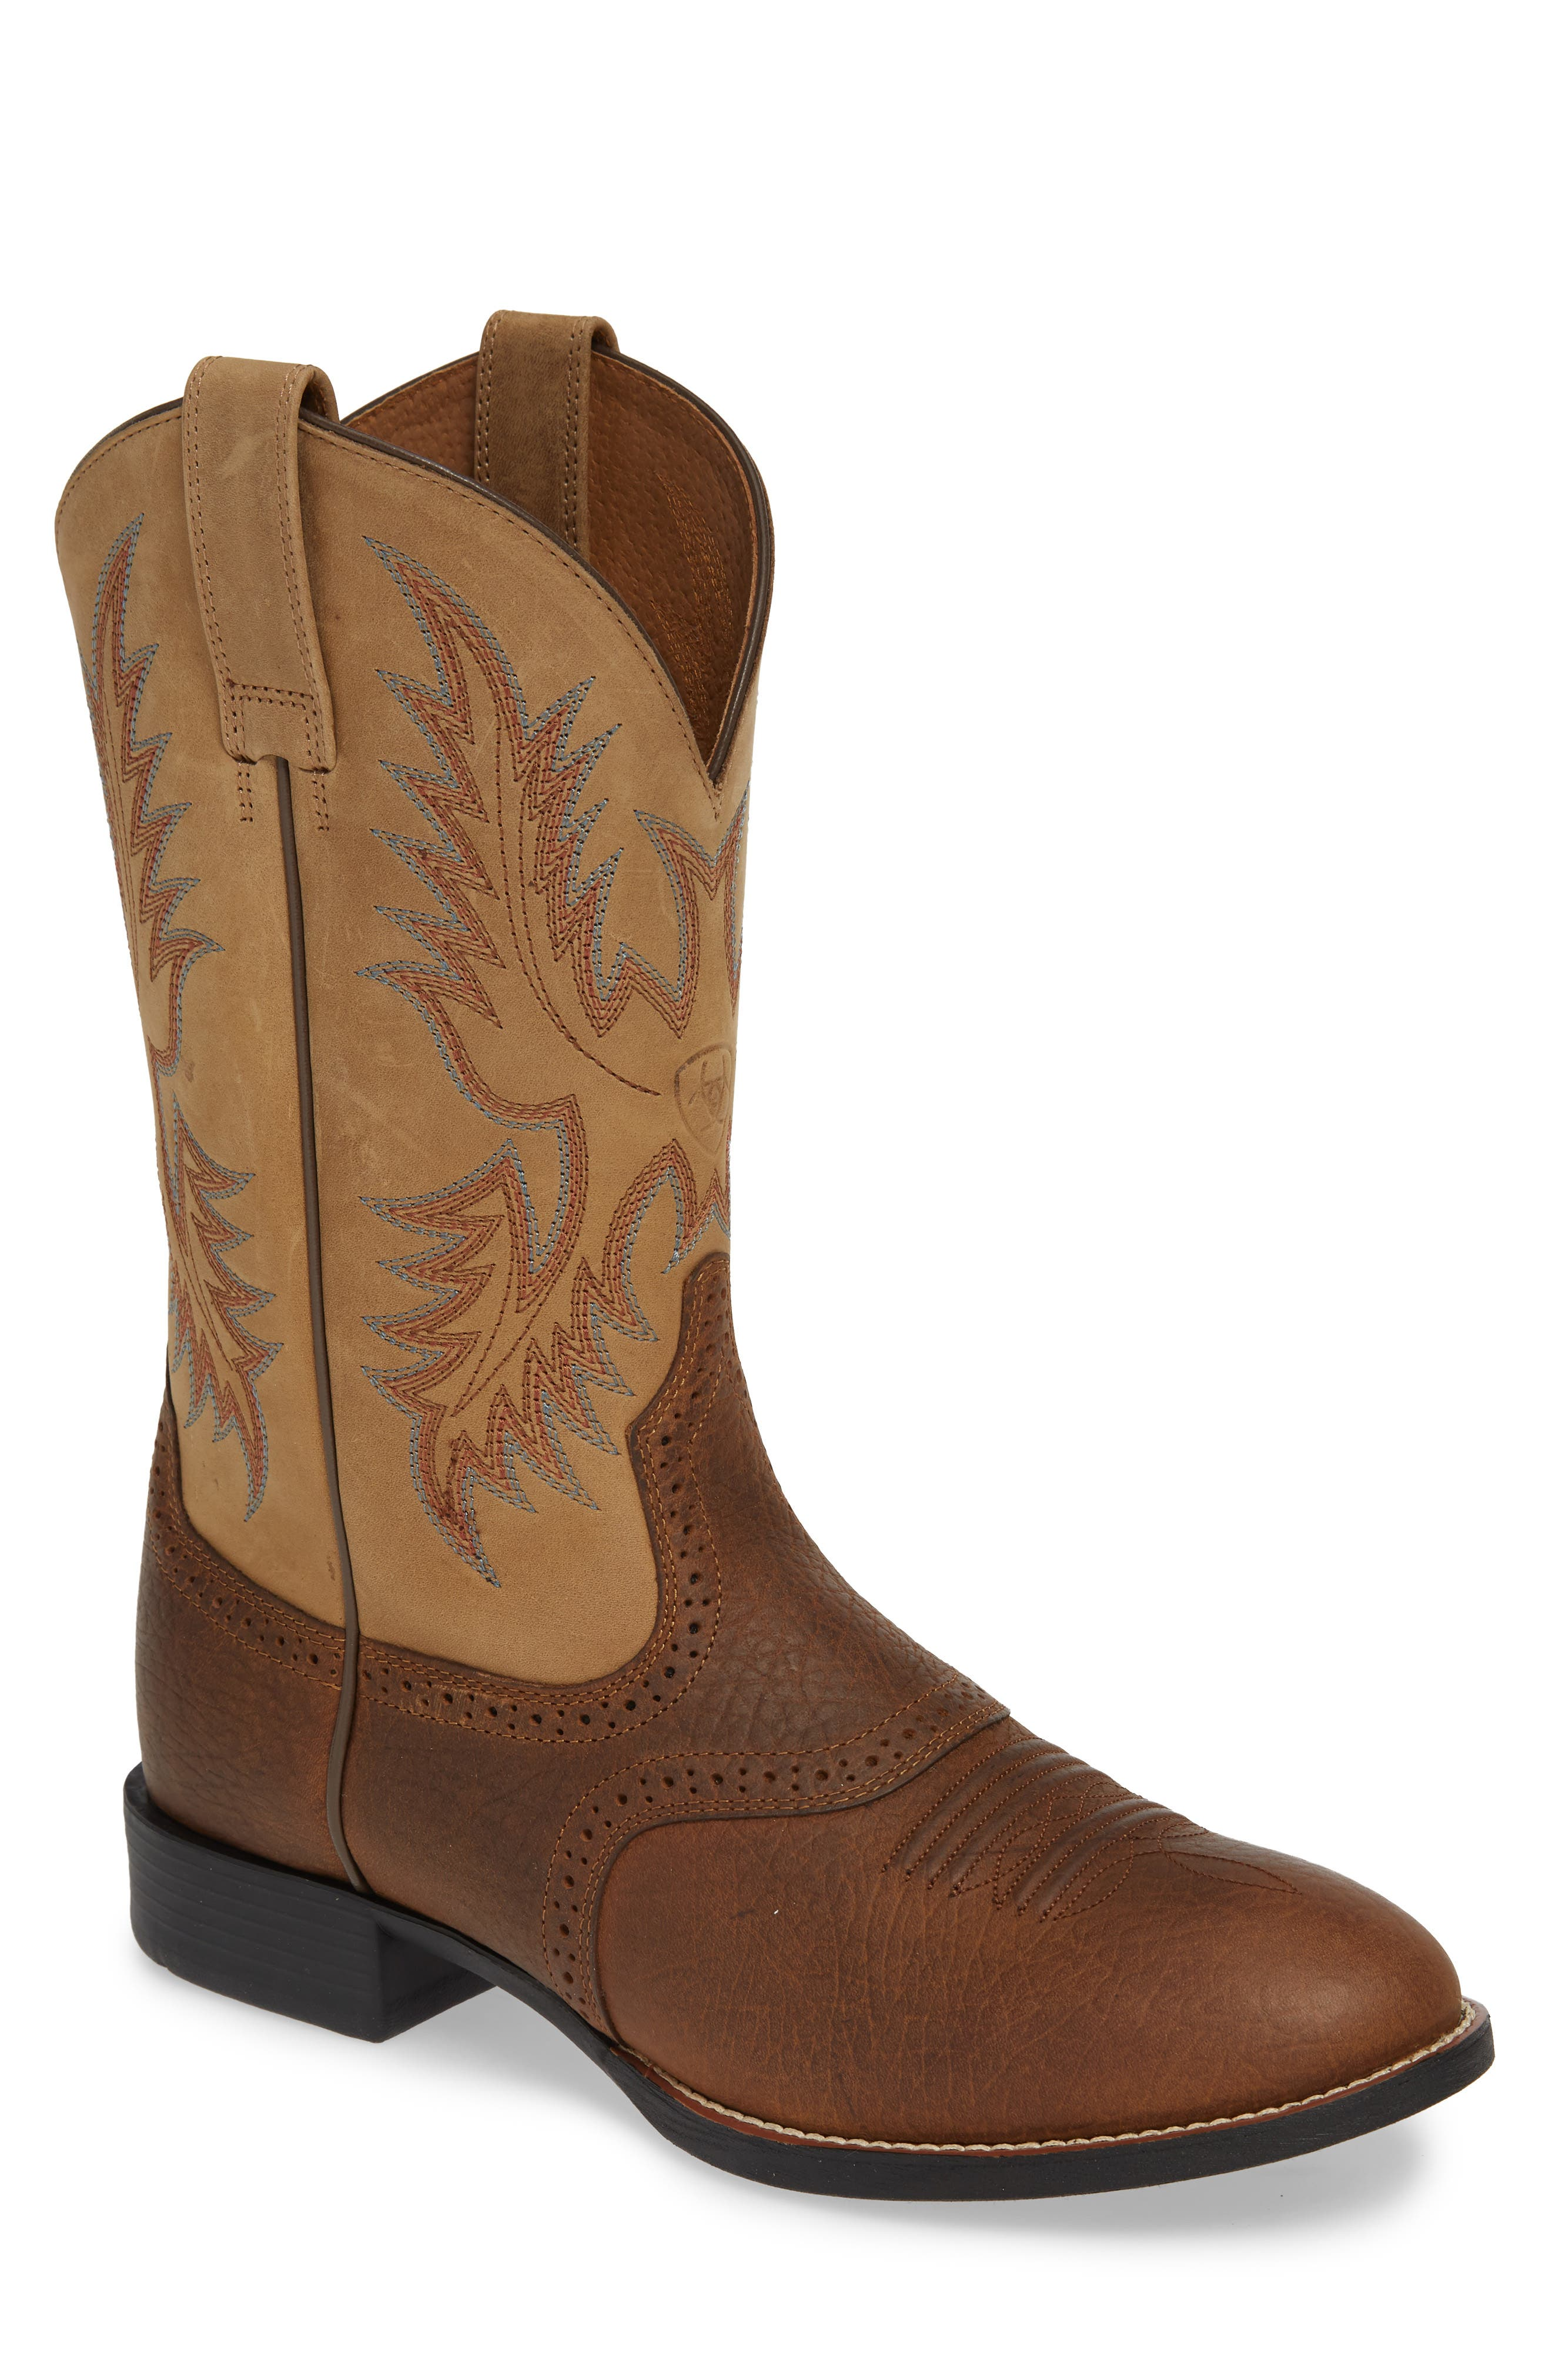 ARIAT Heritage Stockman Cowboy Boot, Main, color, BROWN/ BEIGE LEATHER